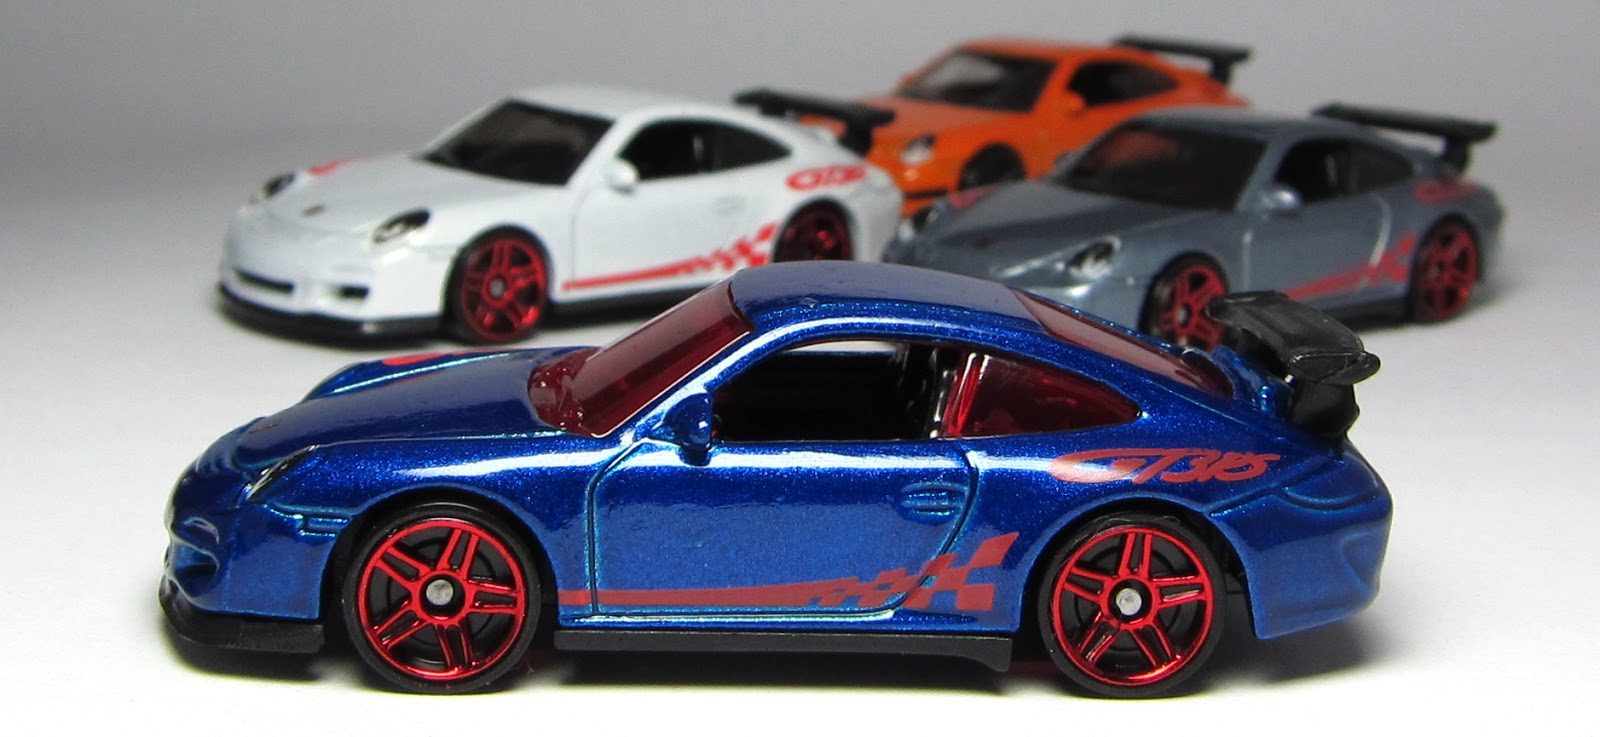 first look hot wheels porsche 911 gt3 rs thelamleygroup. Black Bedroom Furniture Sets. Home Design Ideas